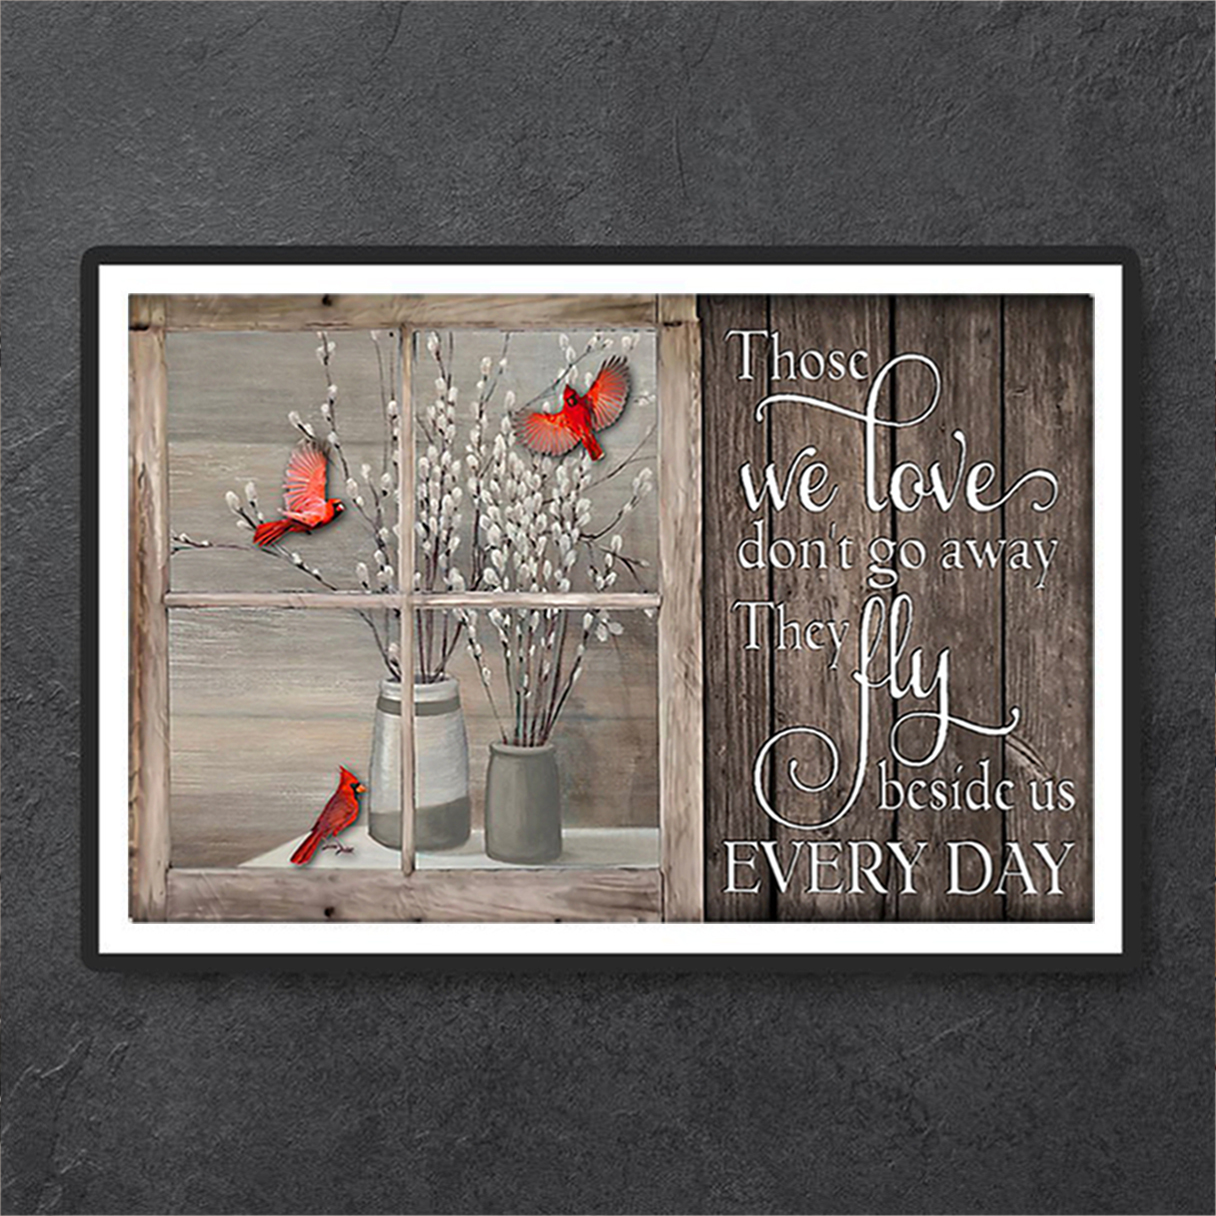 Cardinal window those we love don't go away poster A3